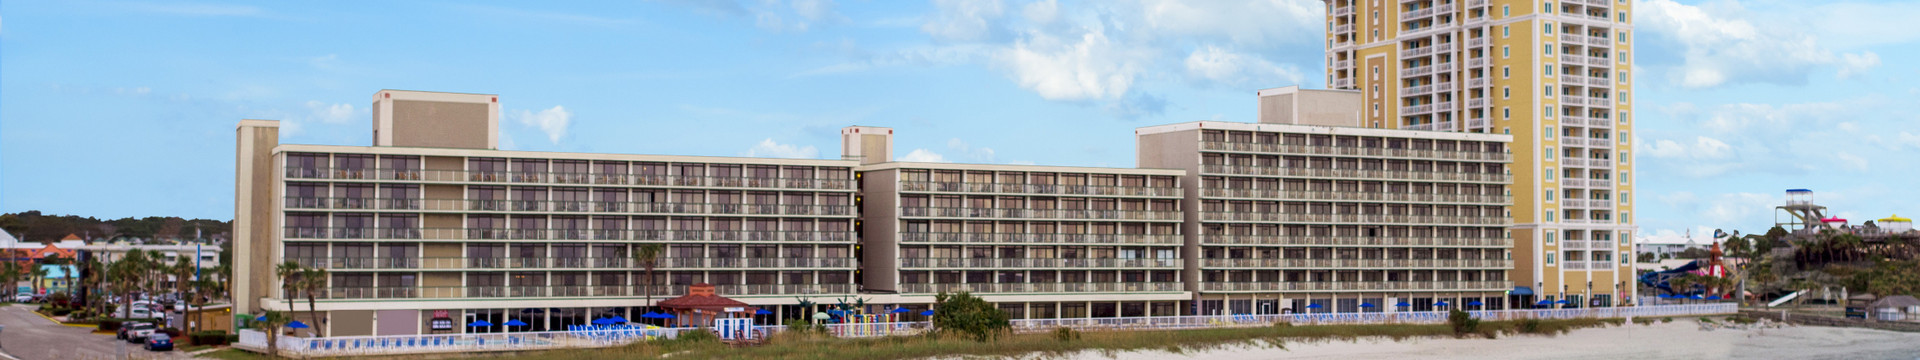 Learn About our Oceanfront Hotel in Myrtle Beach, SC | Westgate Myrtle Beach Oceanfront Resort